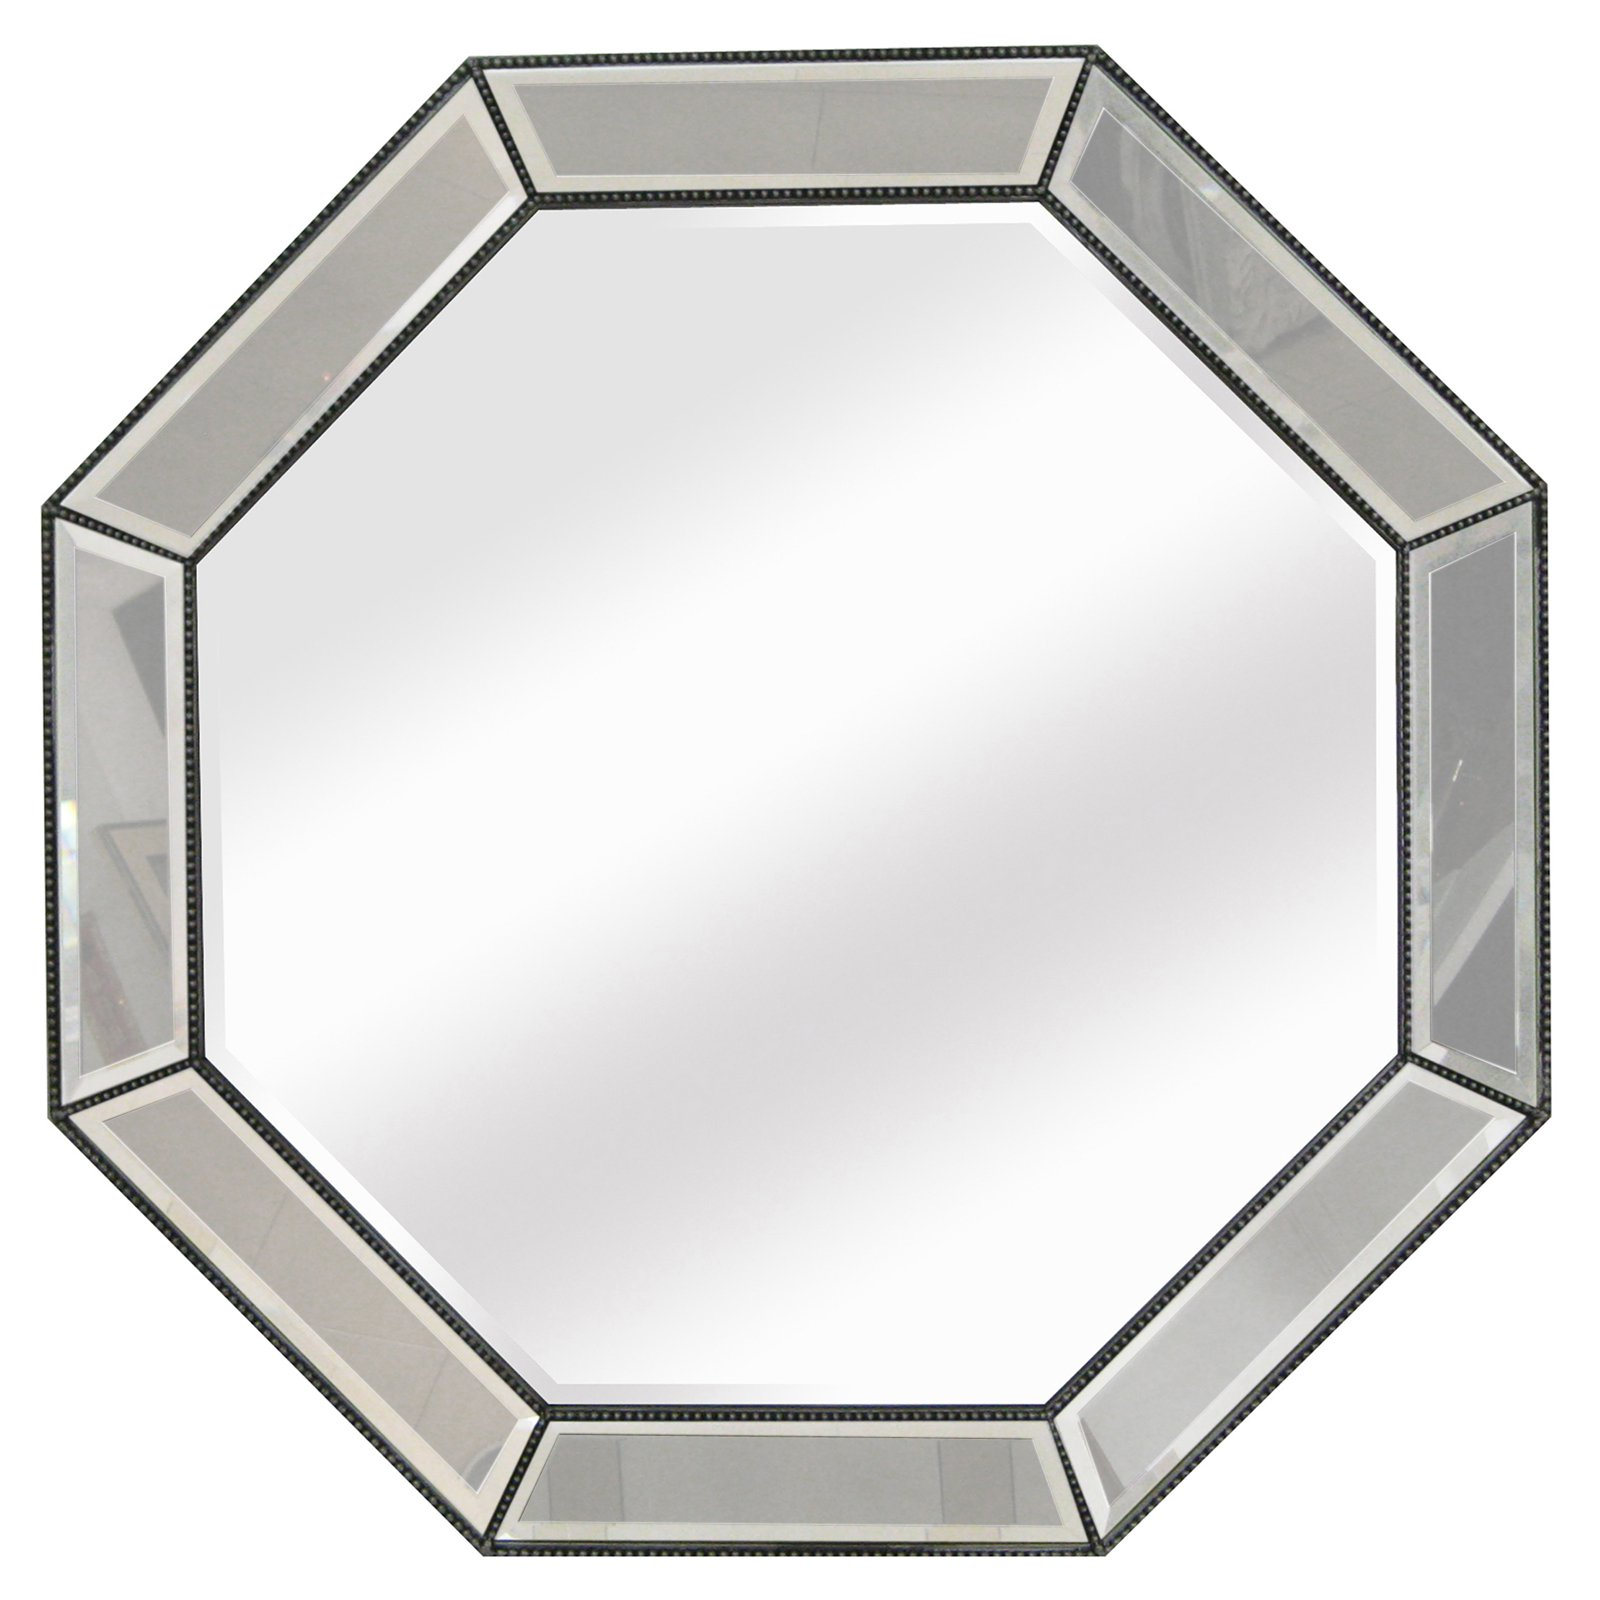 Beaded Octagon Wall Mirror - 44W x 44H in.